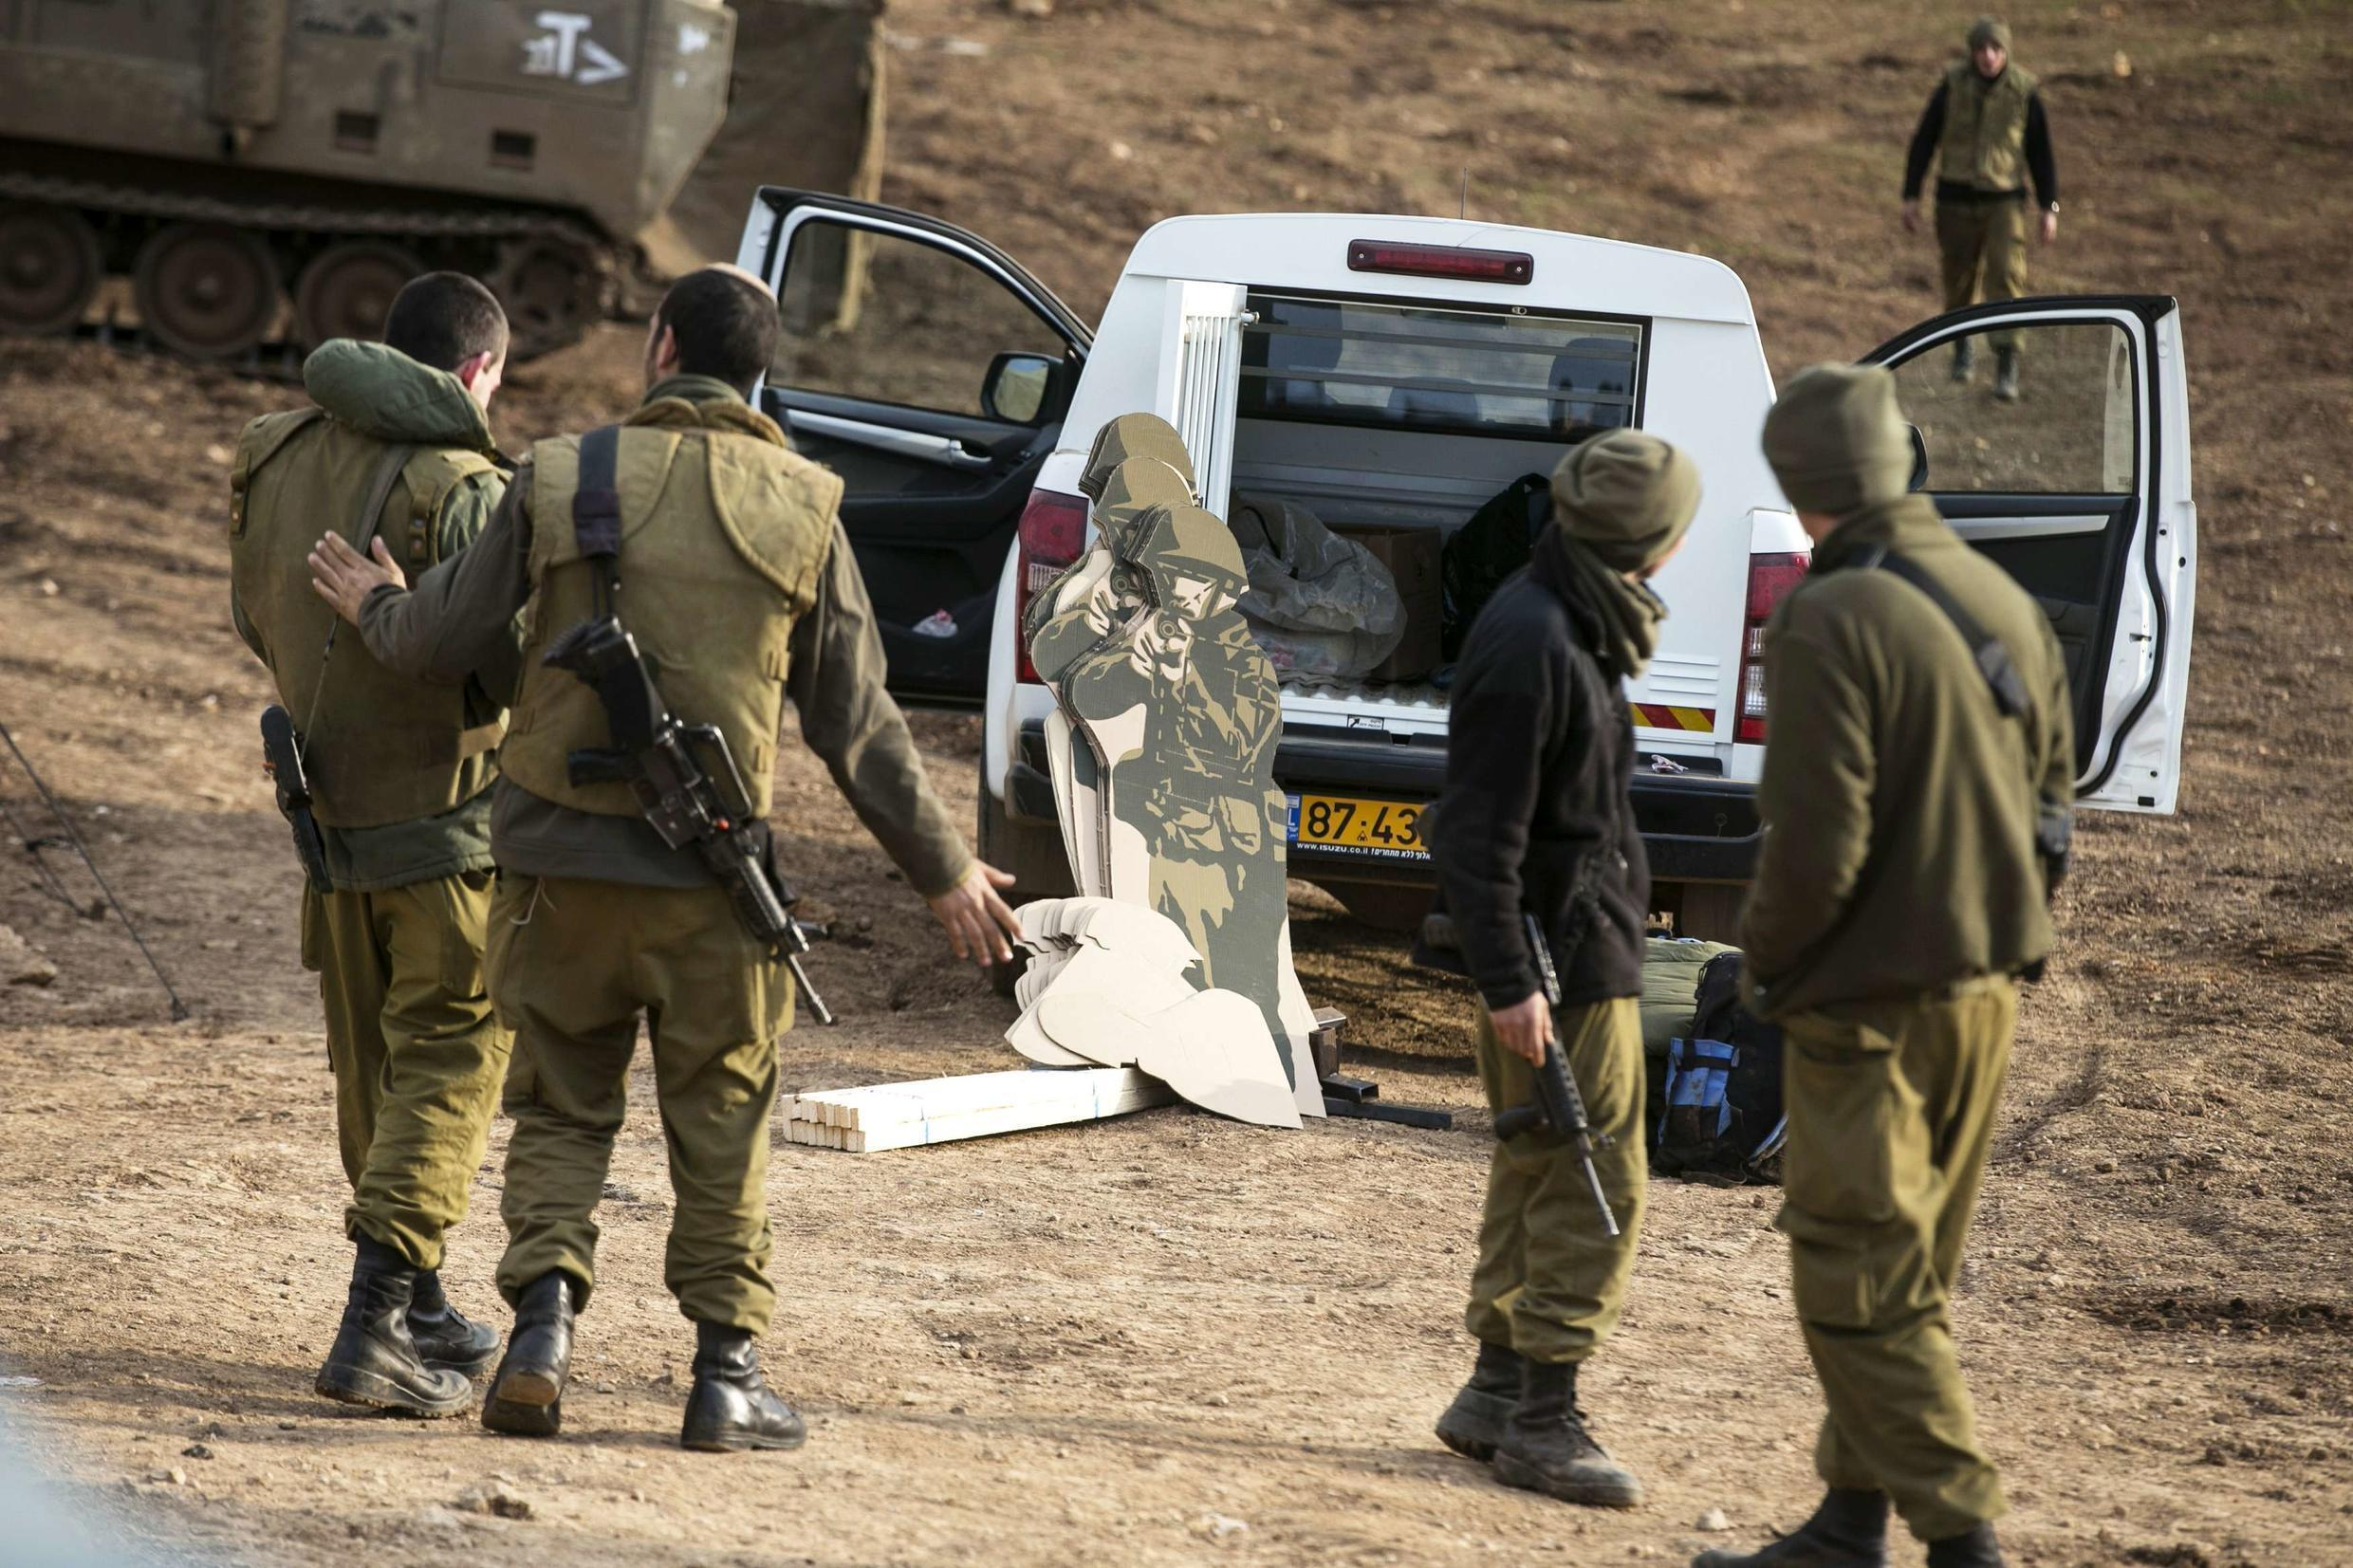 Israeli soldiers patrolling along the border with Syria in the Golan Heights earlier this year.